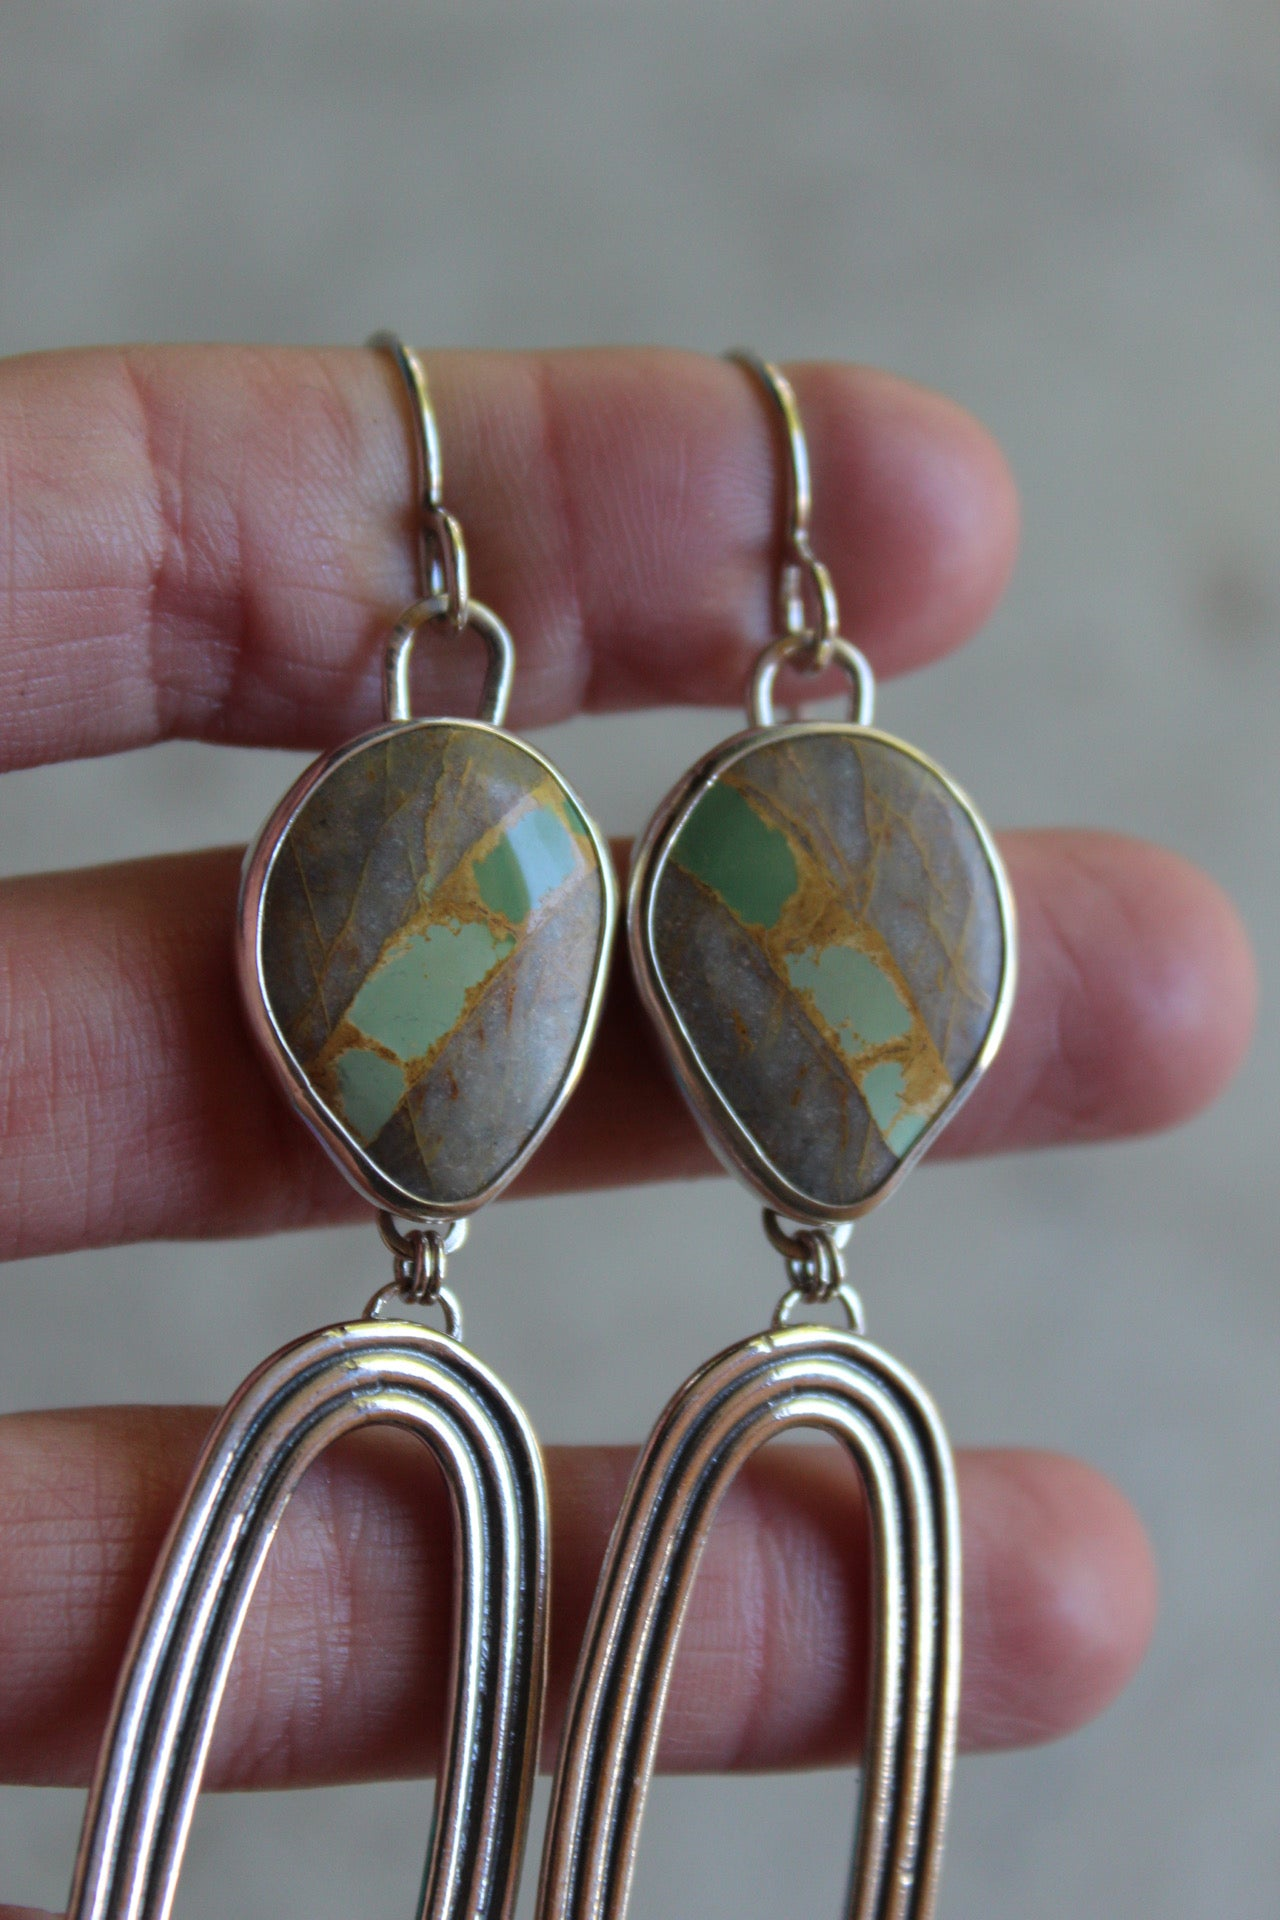 Rainbow Earrings #52